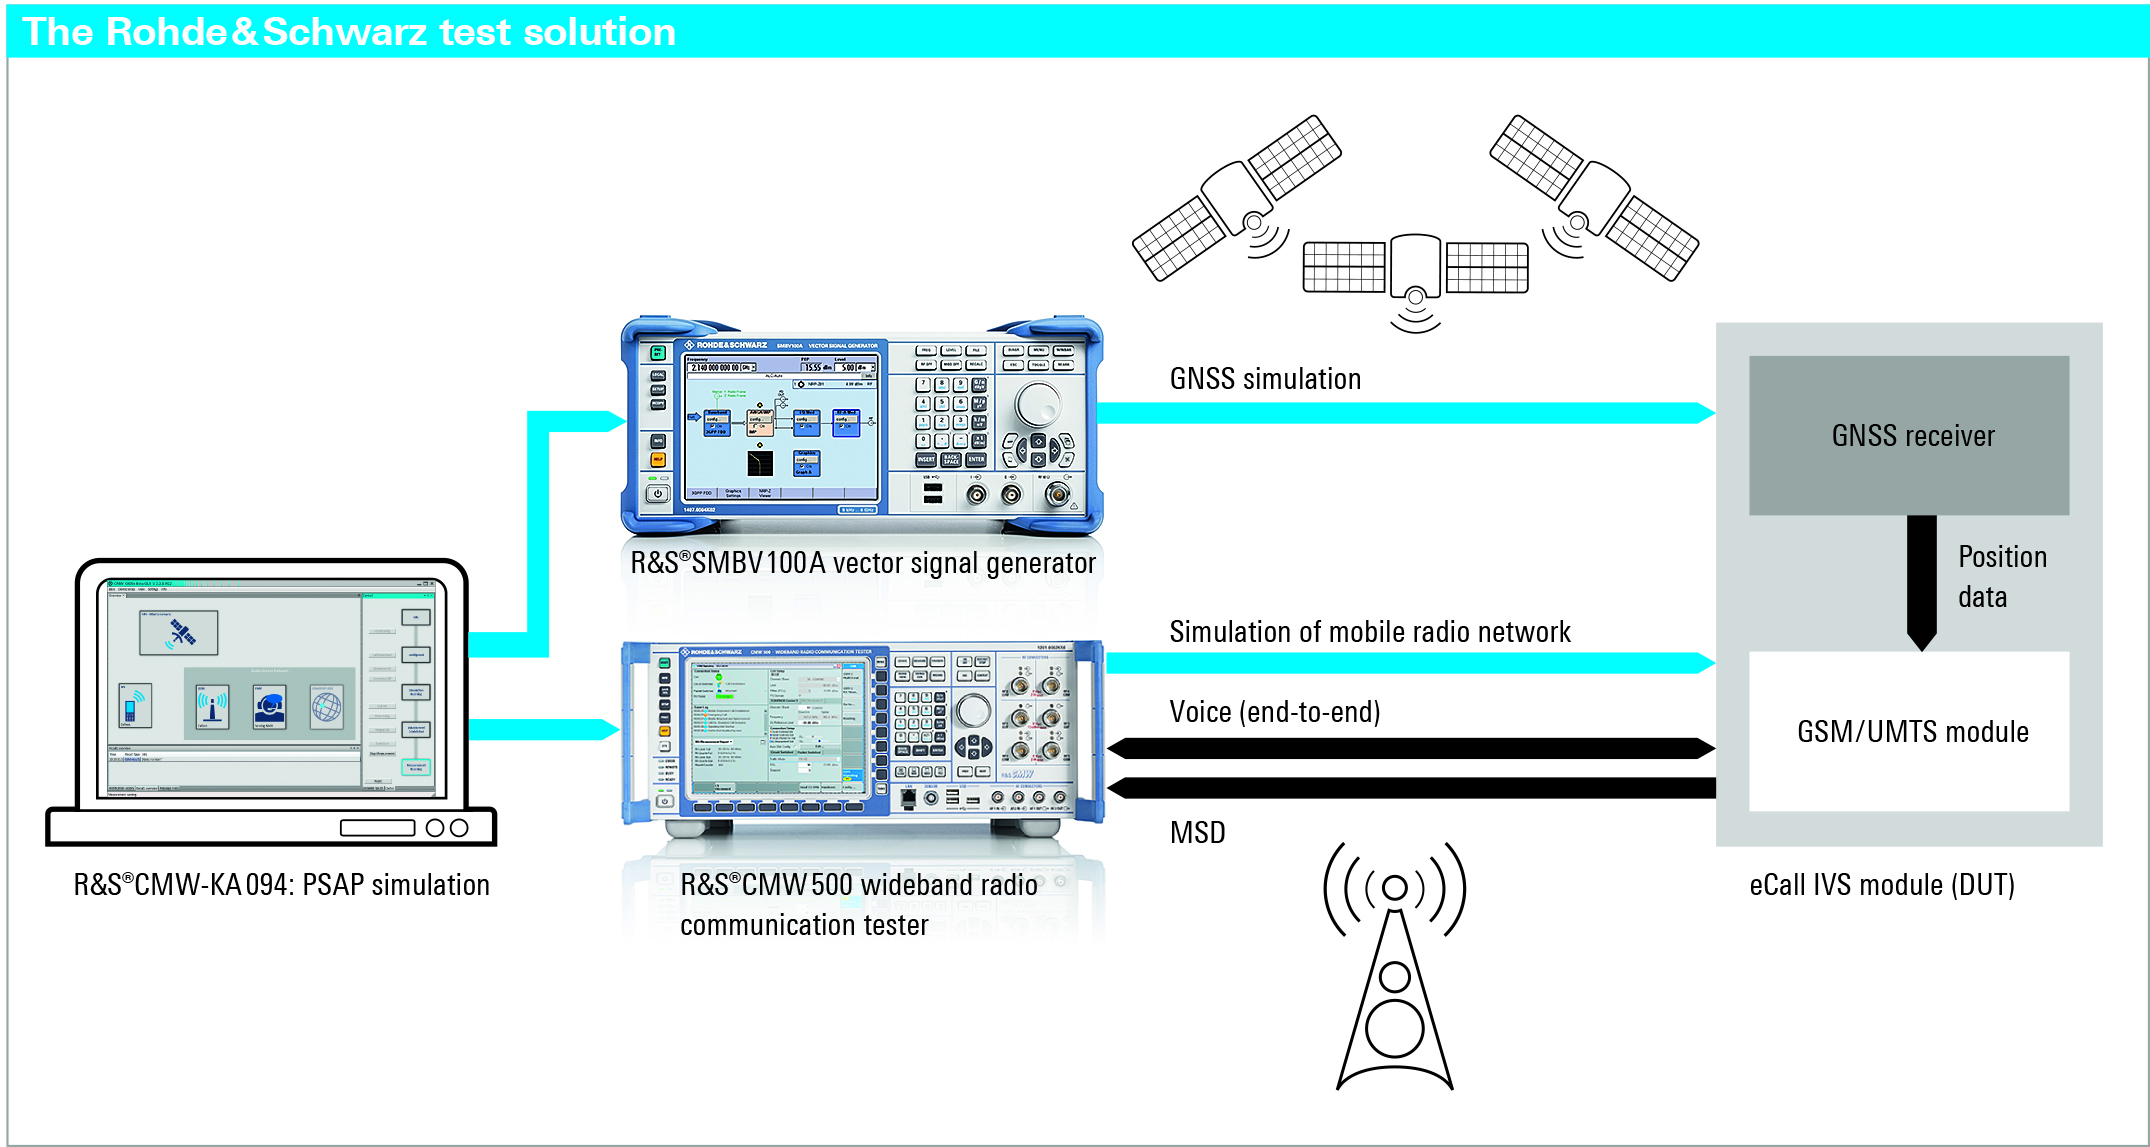 Figure 2 - The test system consists of an R&S CMW500 wideband radio communication tester for the network simulation, an R&S SMBV100A vector ­signal generator for the GNSS simulation and PC application software.